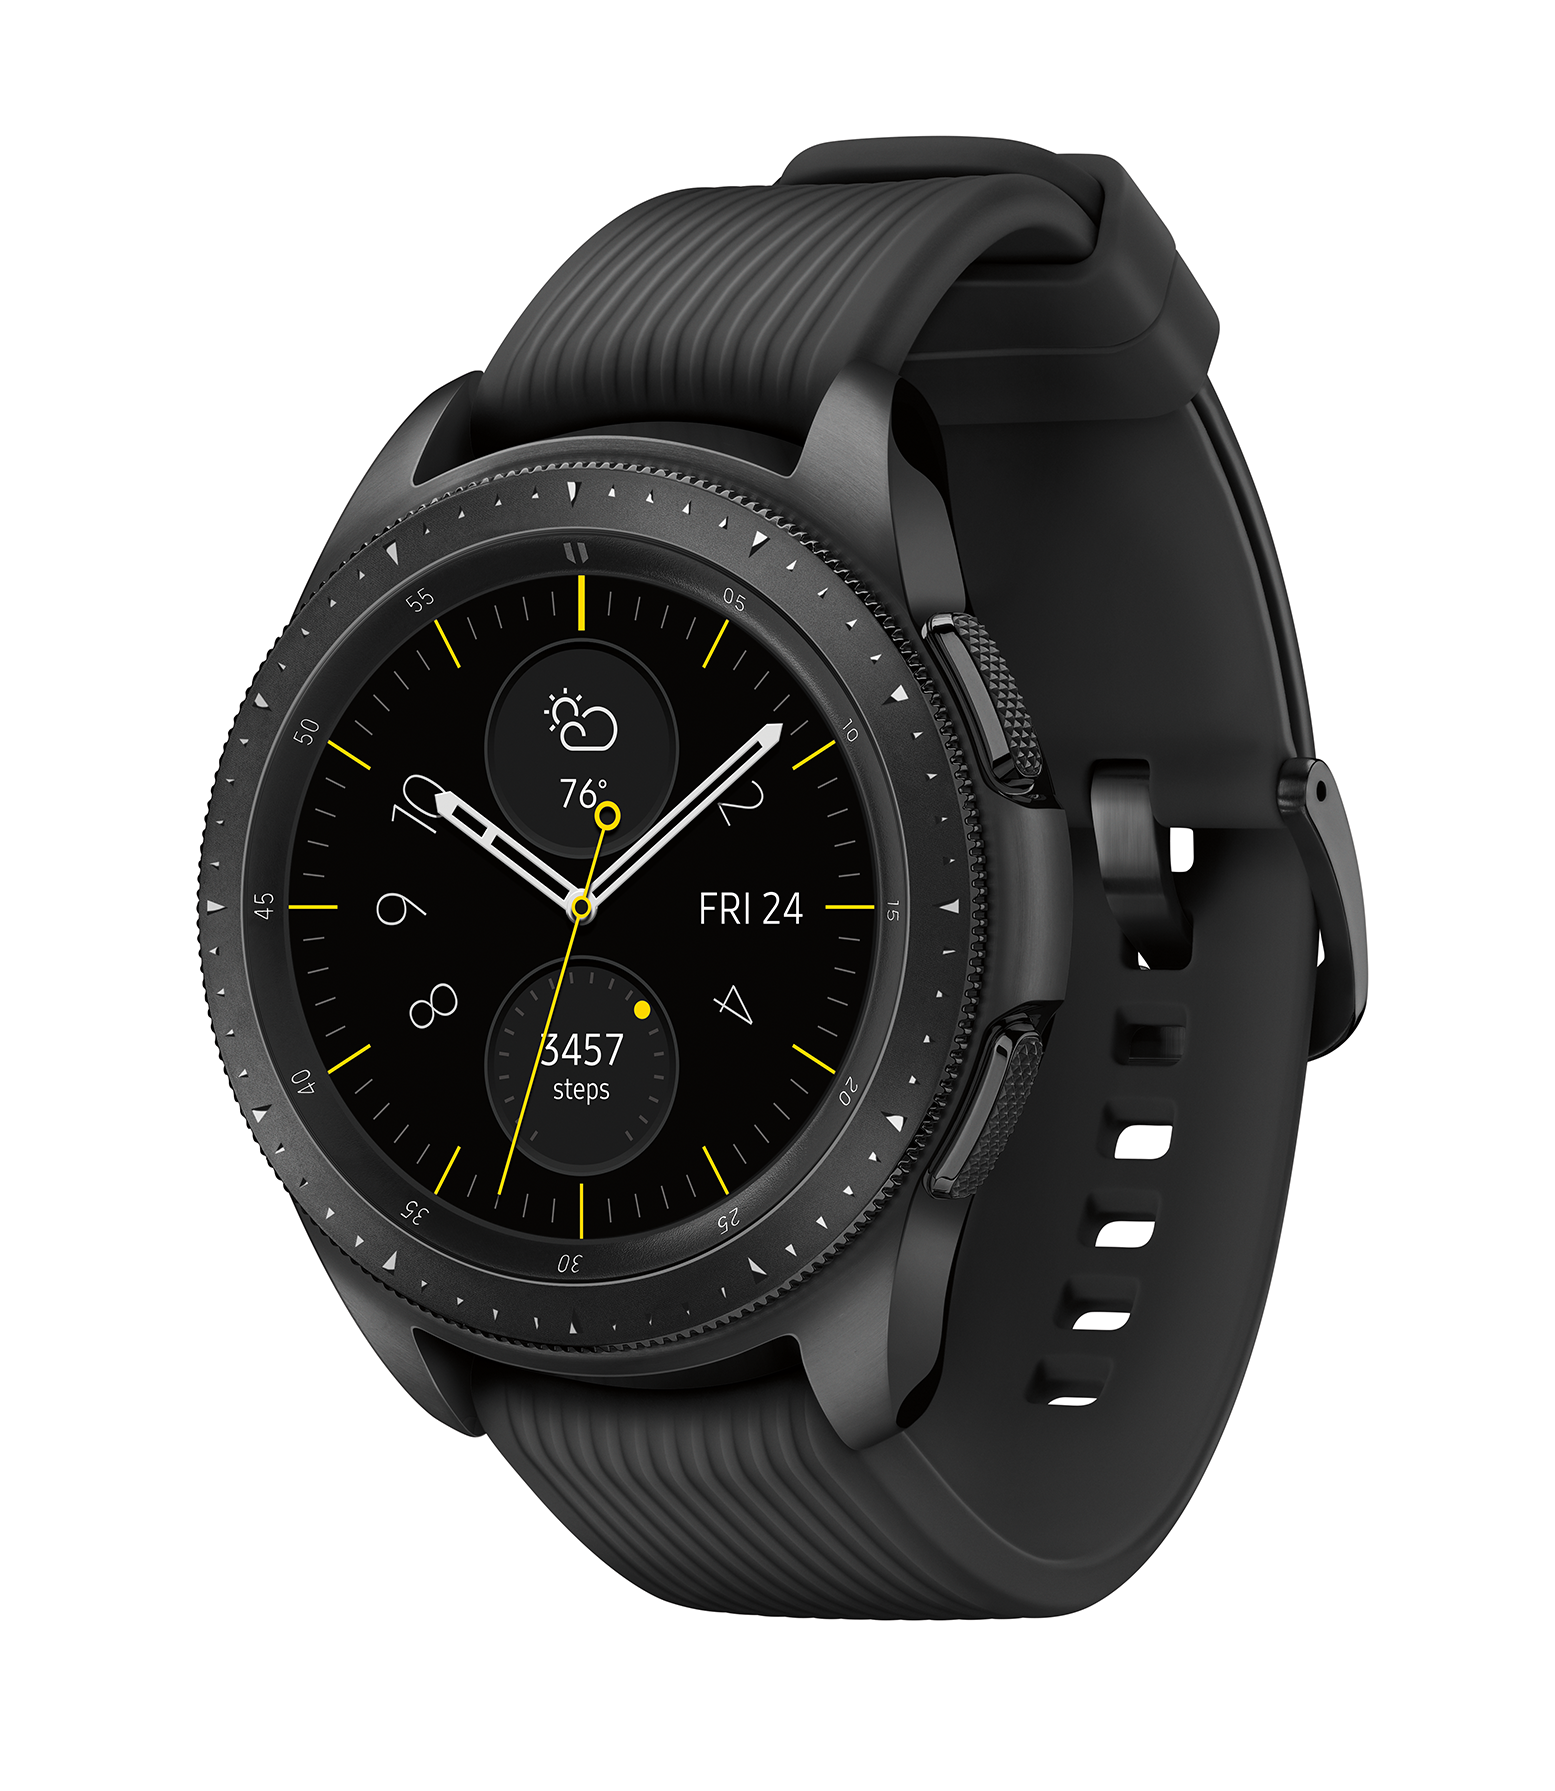 SAMSUNG Galaxy Watch – Bluetooth Smart Watch (42mm) – Midnight Black – SM-R810NZKAXAR